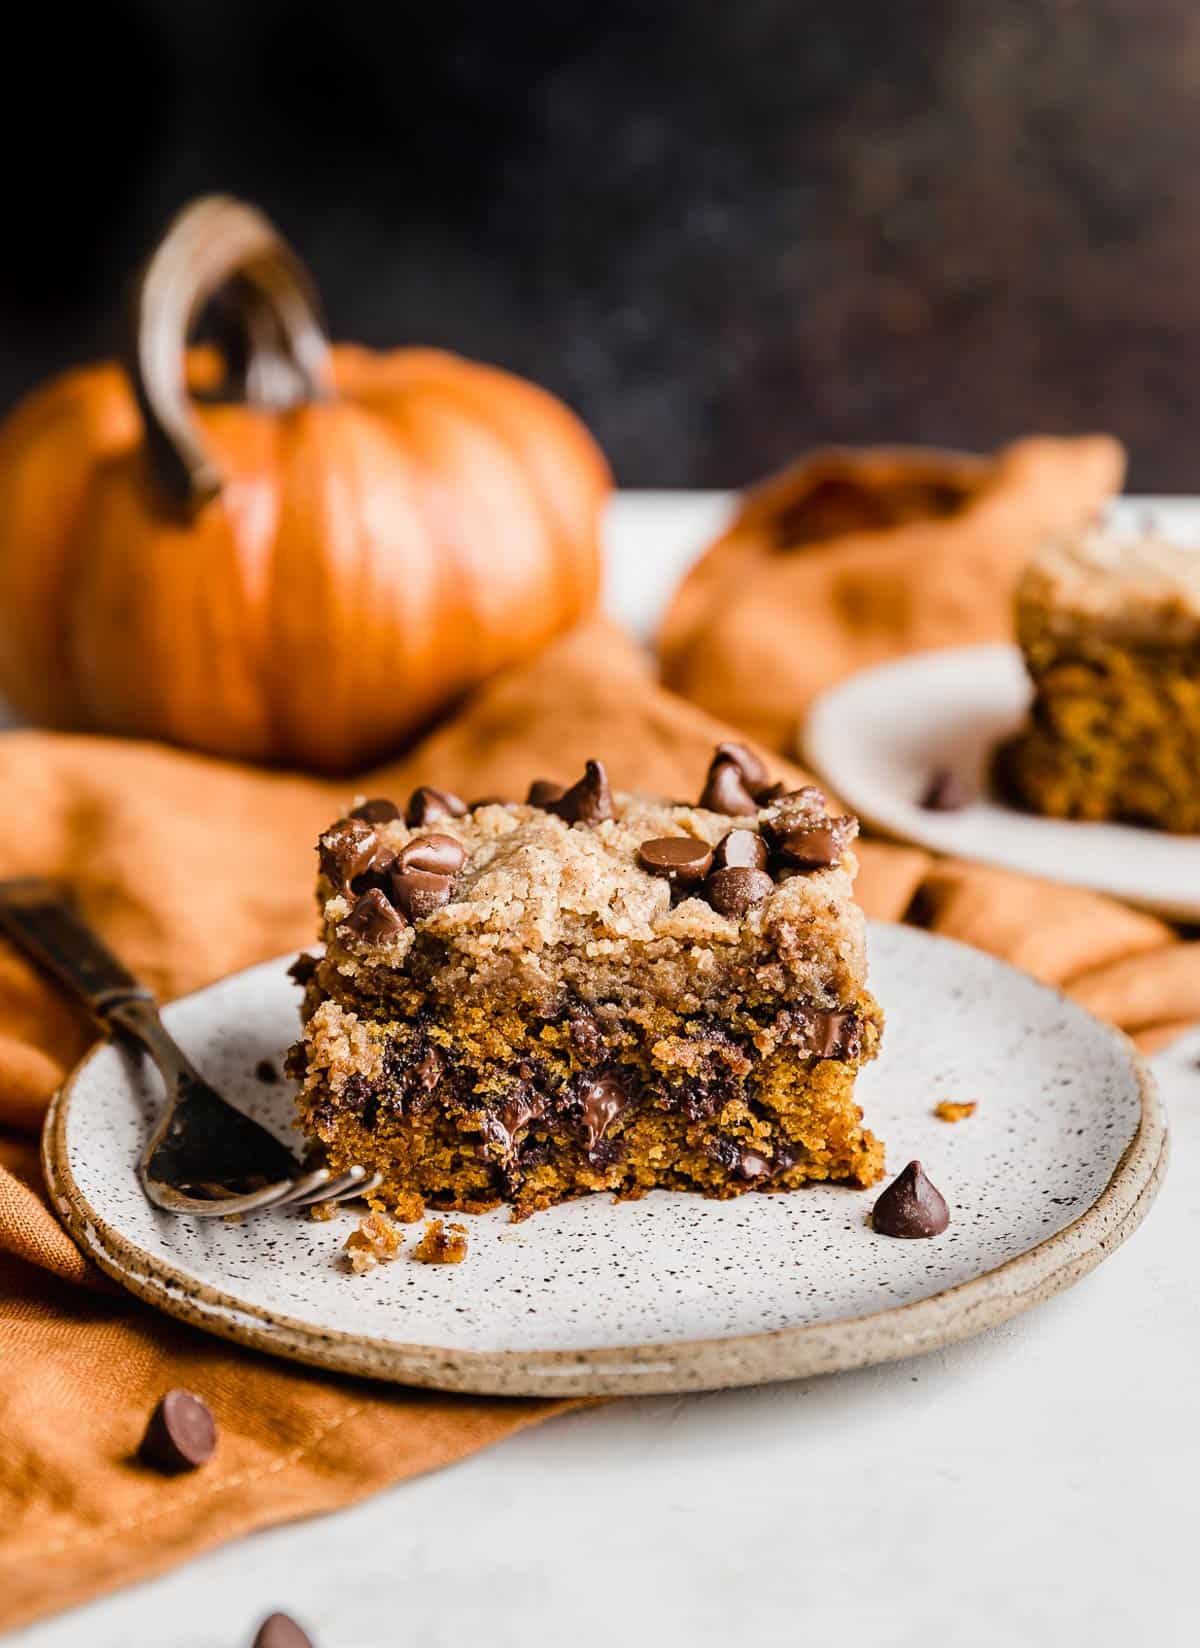 Pumpkin Chocolate Chip Coffee Cake on a white plate against a brown background.